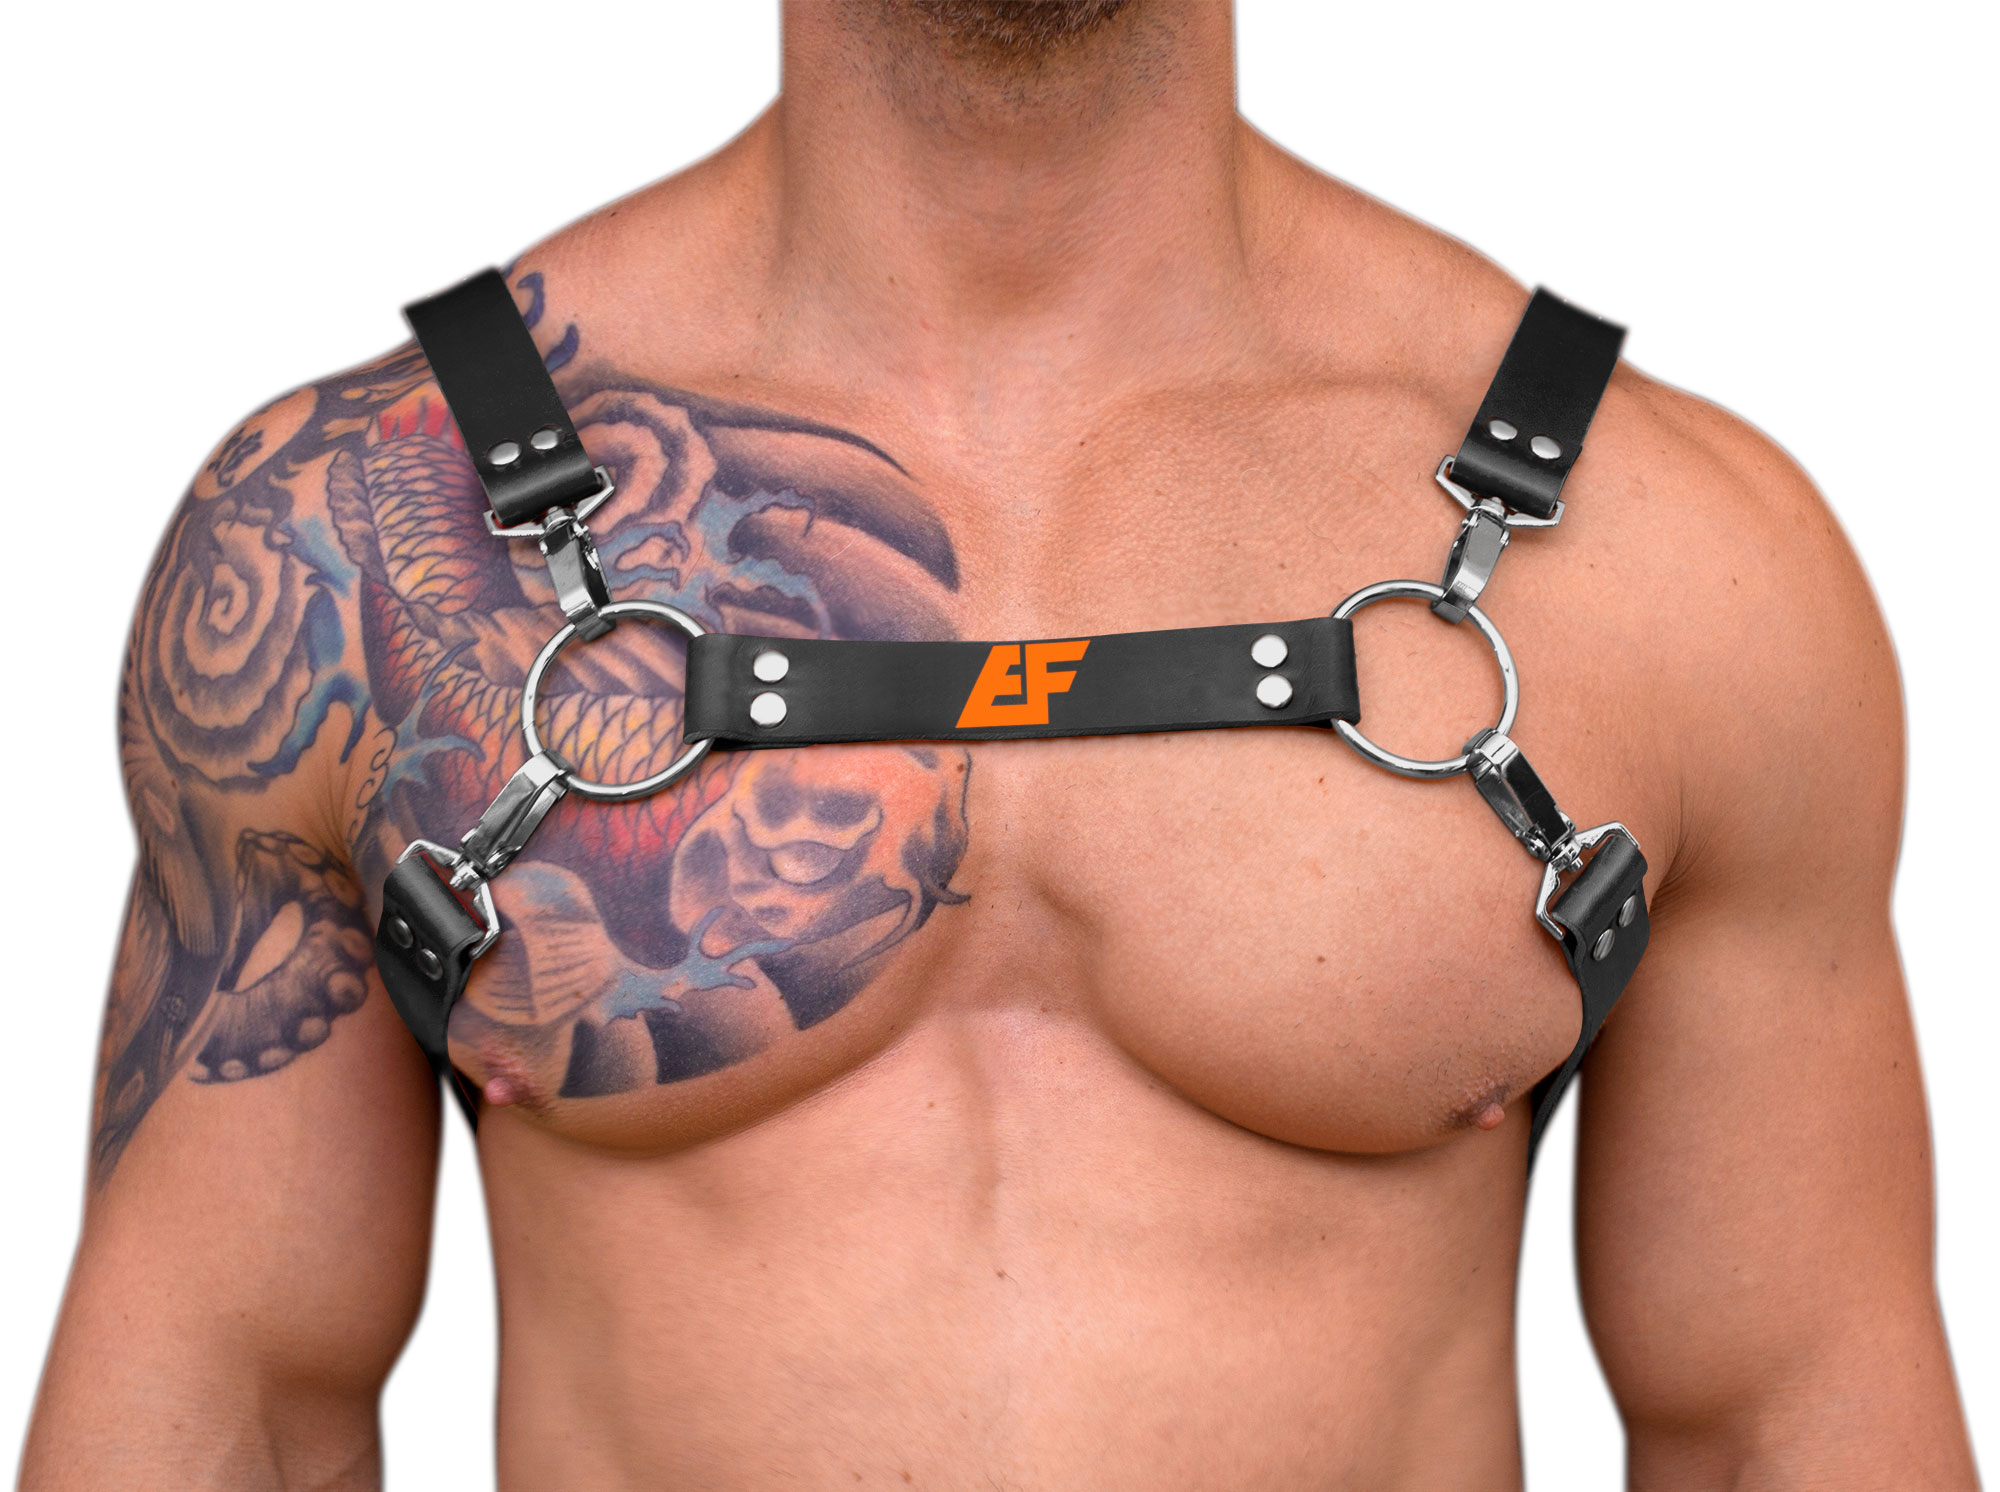 STRONG PUP H-STYLE LEATHER EF LOGO CHEST HARNESS - Black